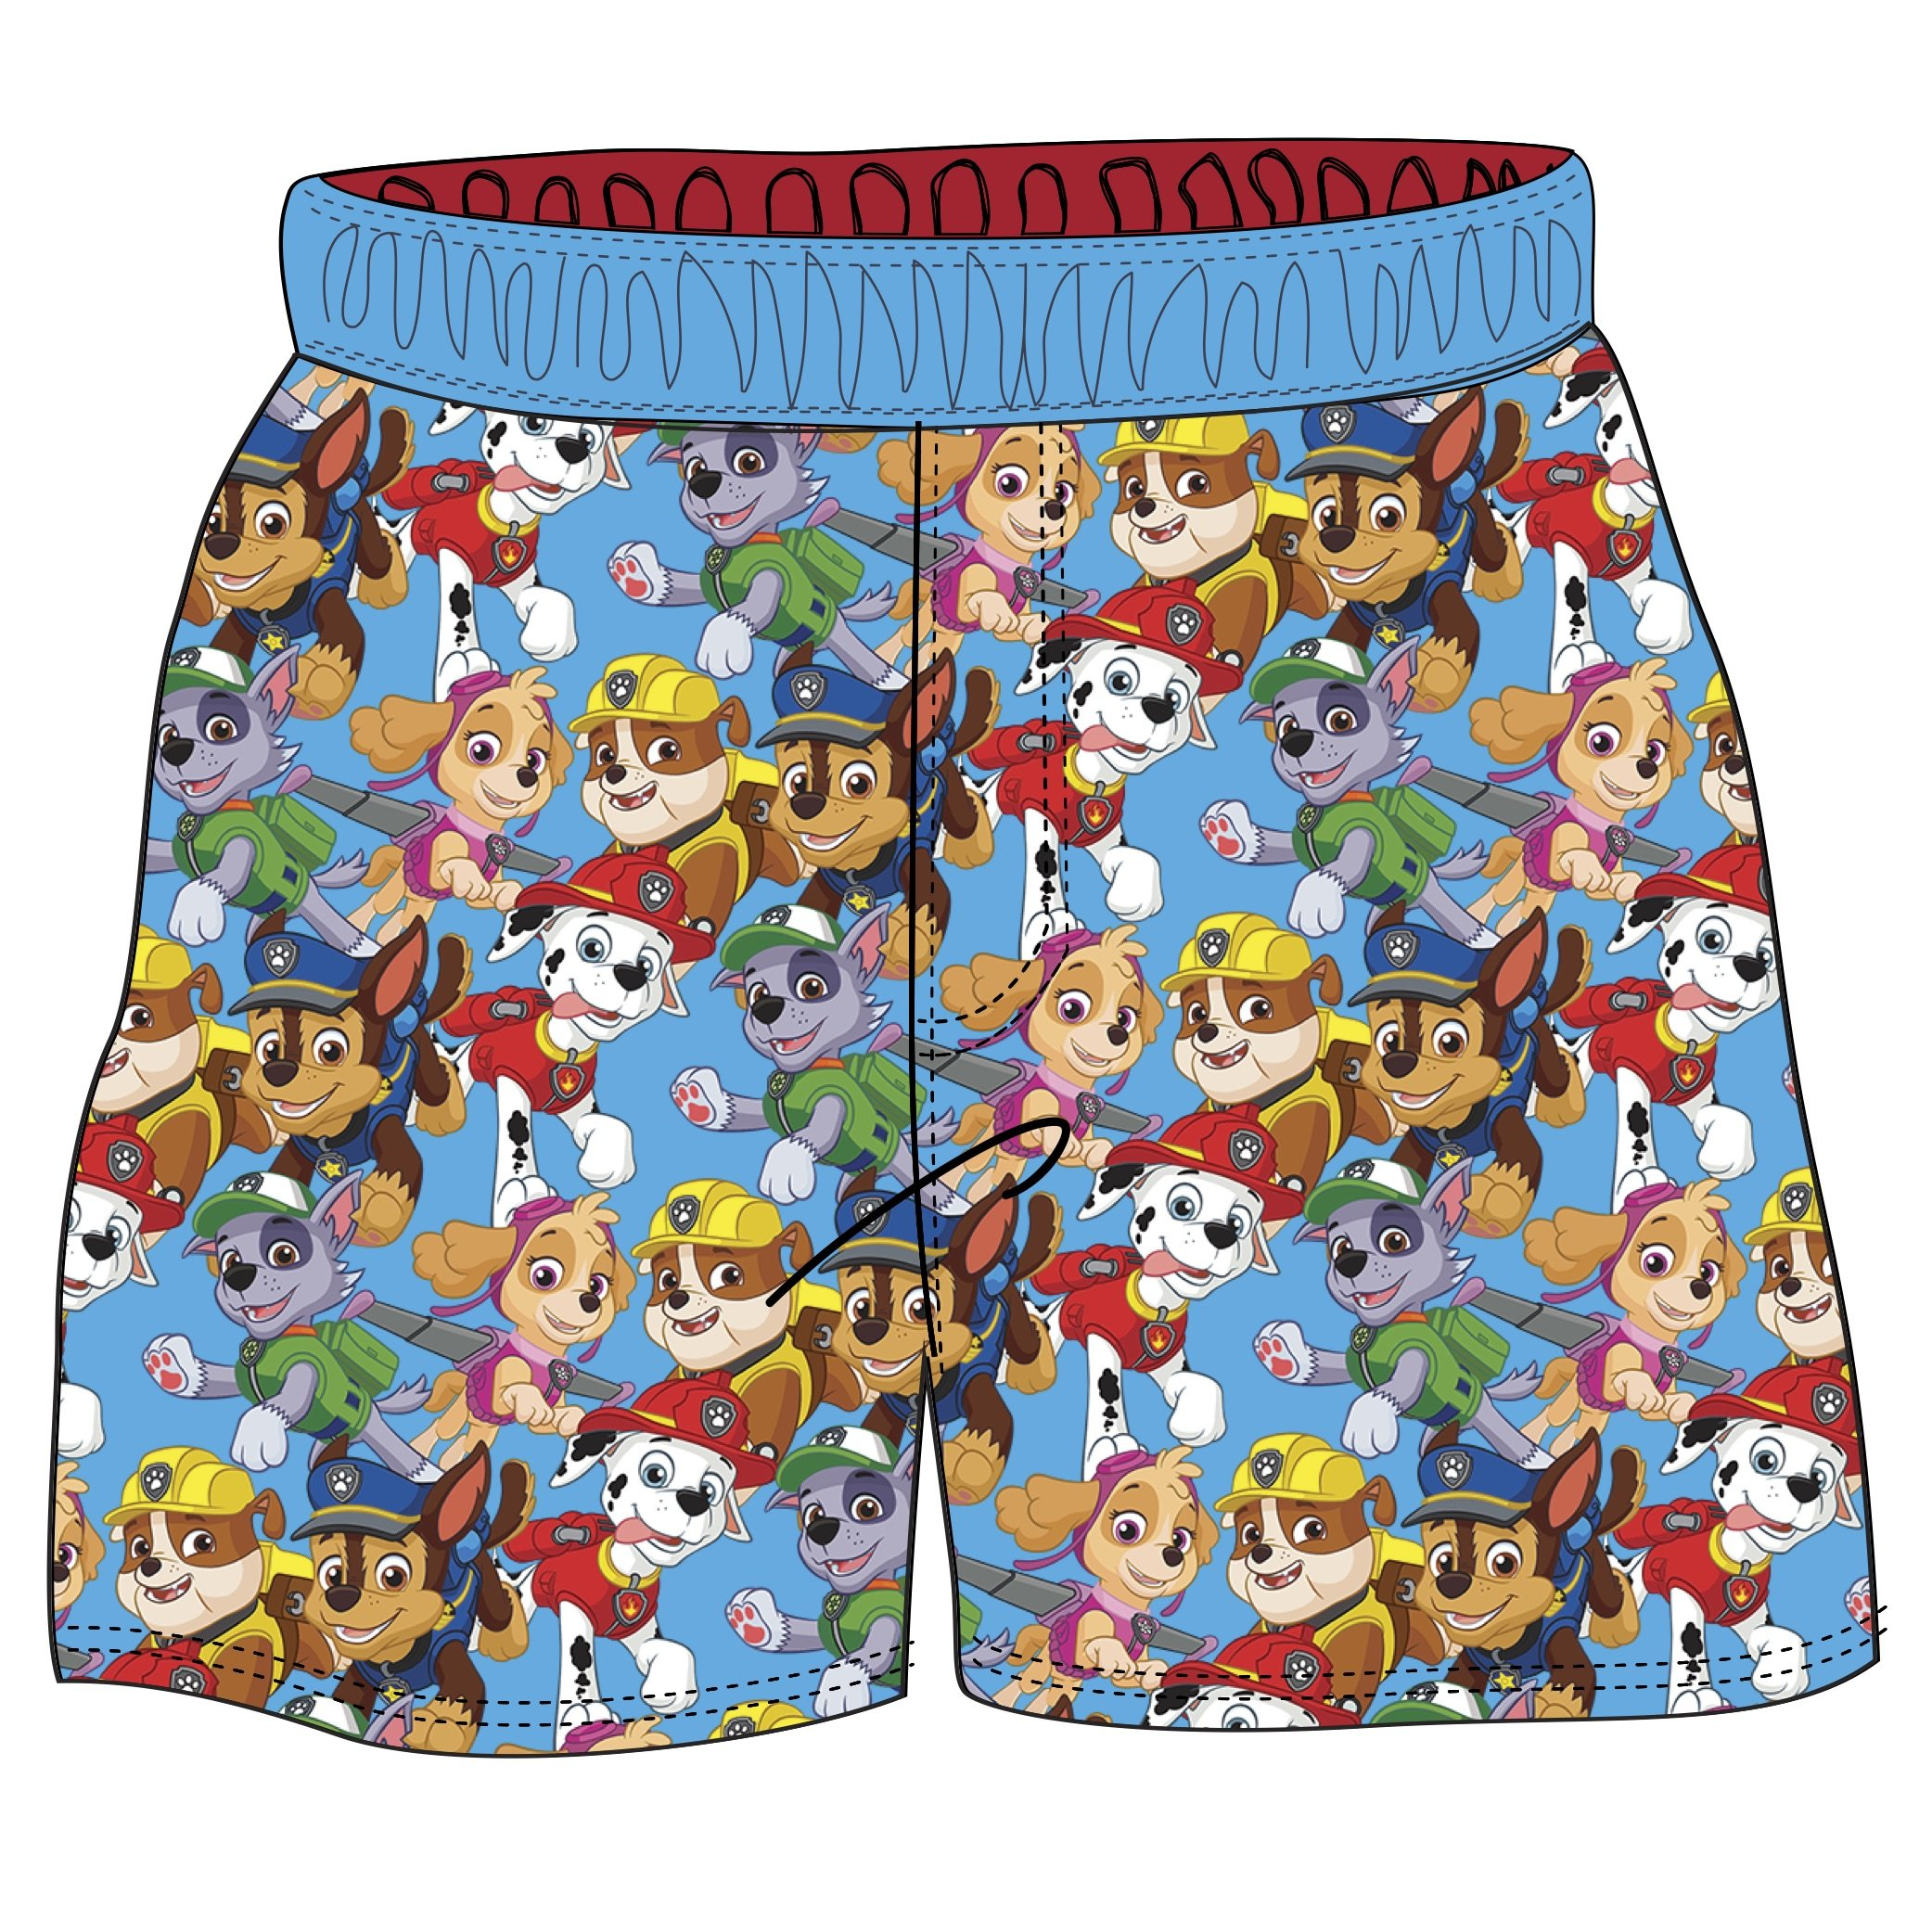 7533e4d932 Nickelodeon Toddler Boys' Paw Patrol Swim Shorts, Multi, 2T